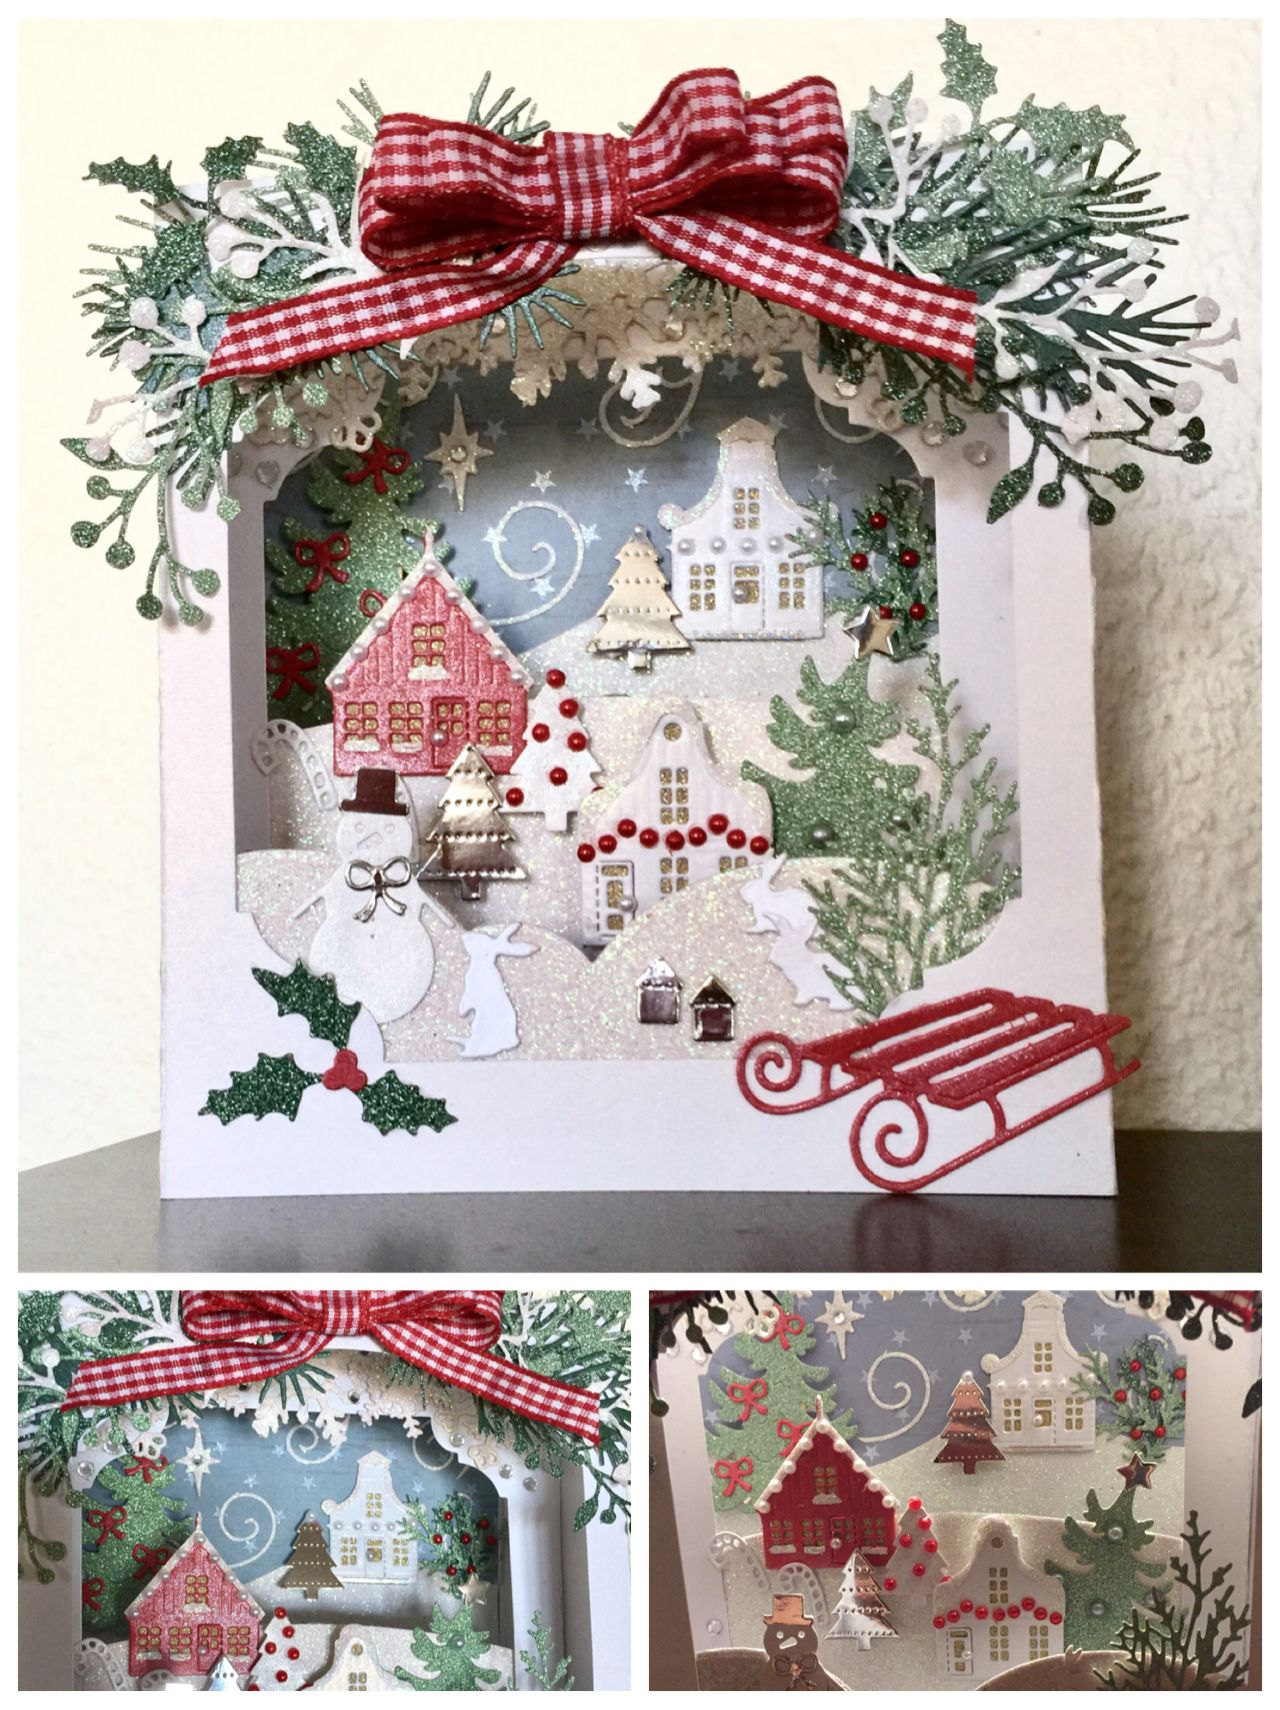 Made by Sizzix and me ☺️ Christmas cards handmade